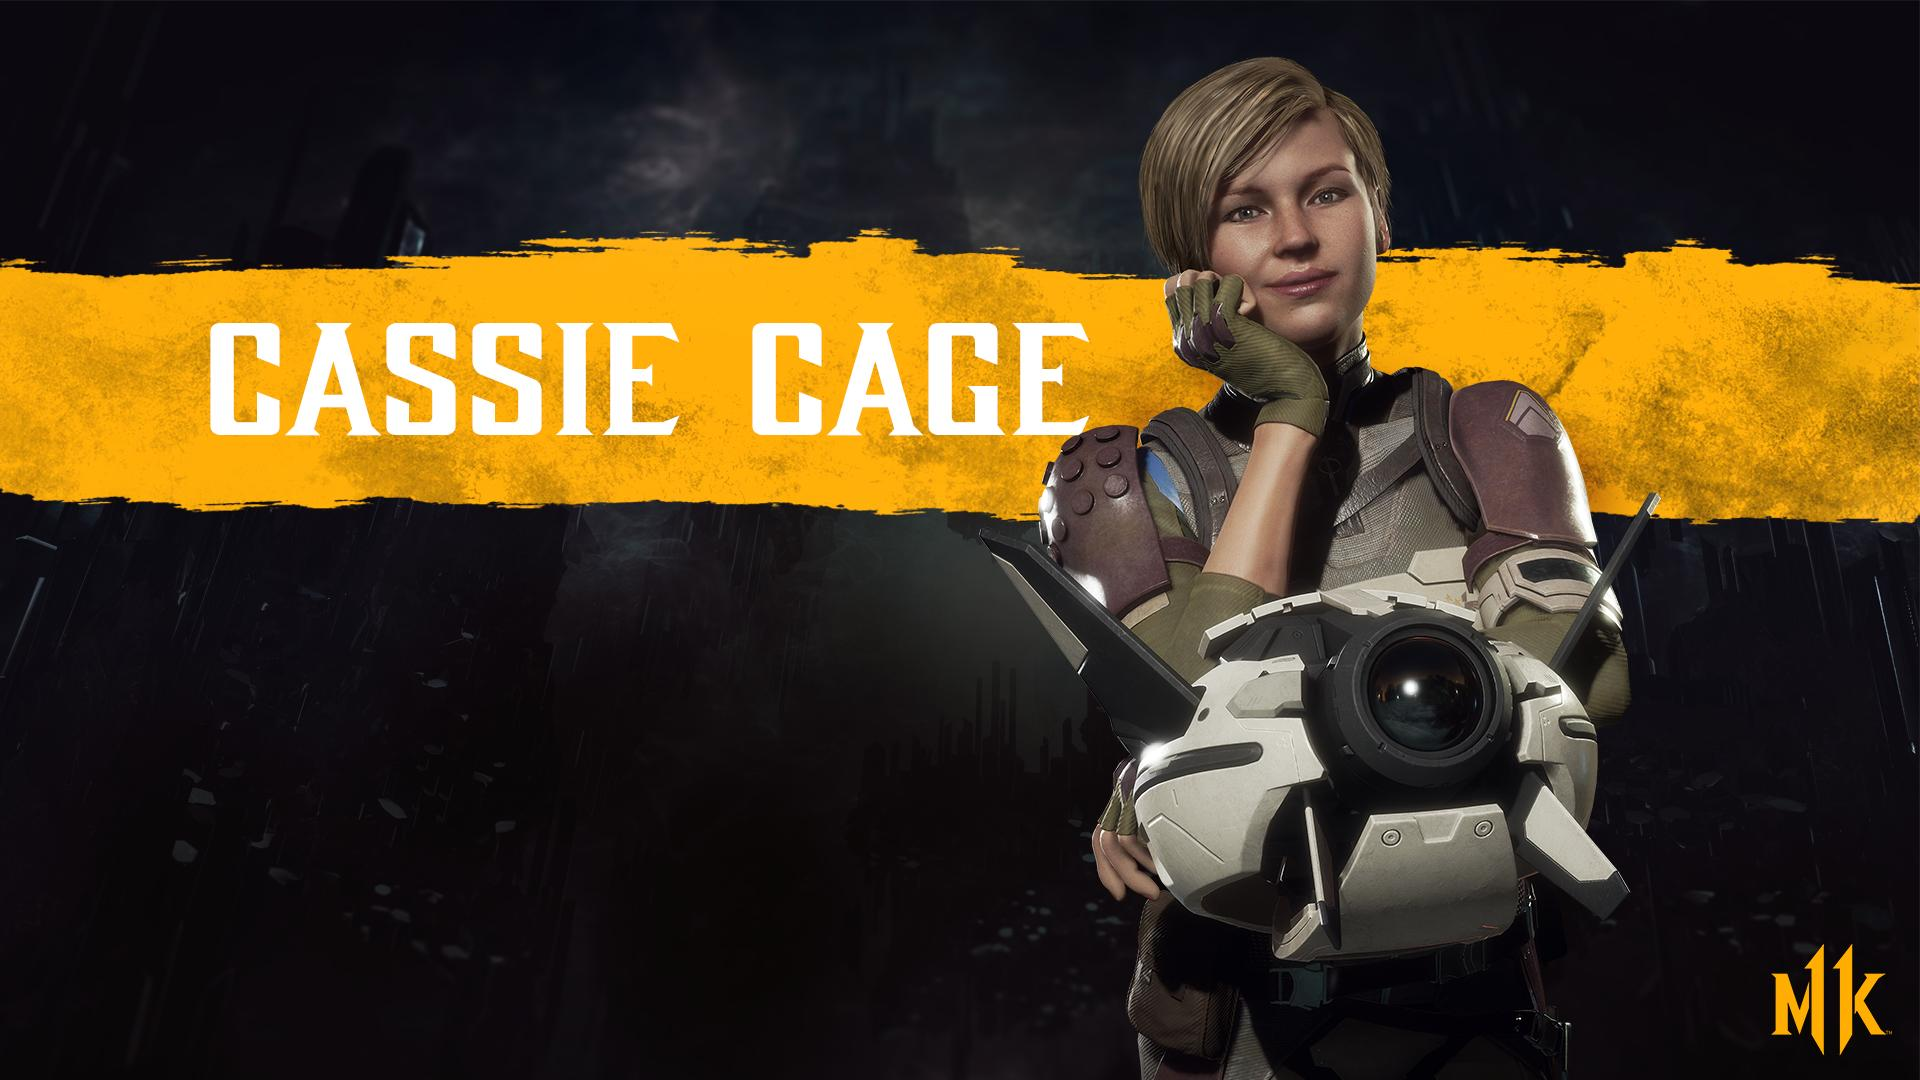 Mortal Kombat 11 background - Cassie Cage